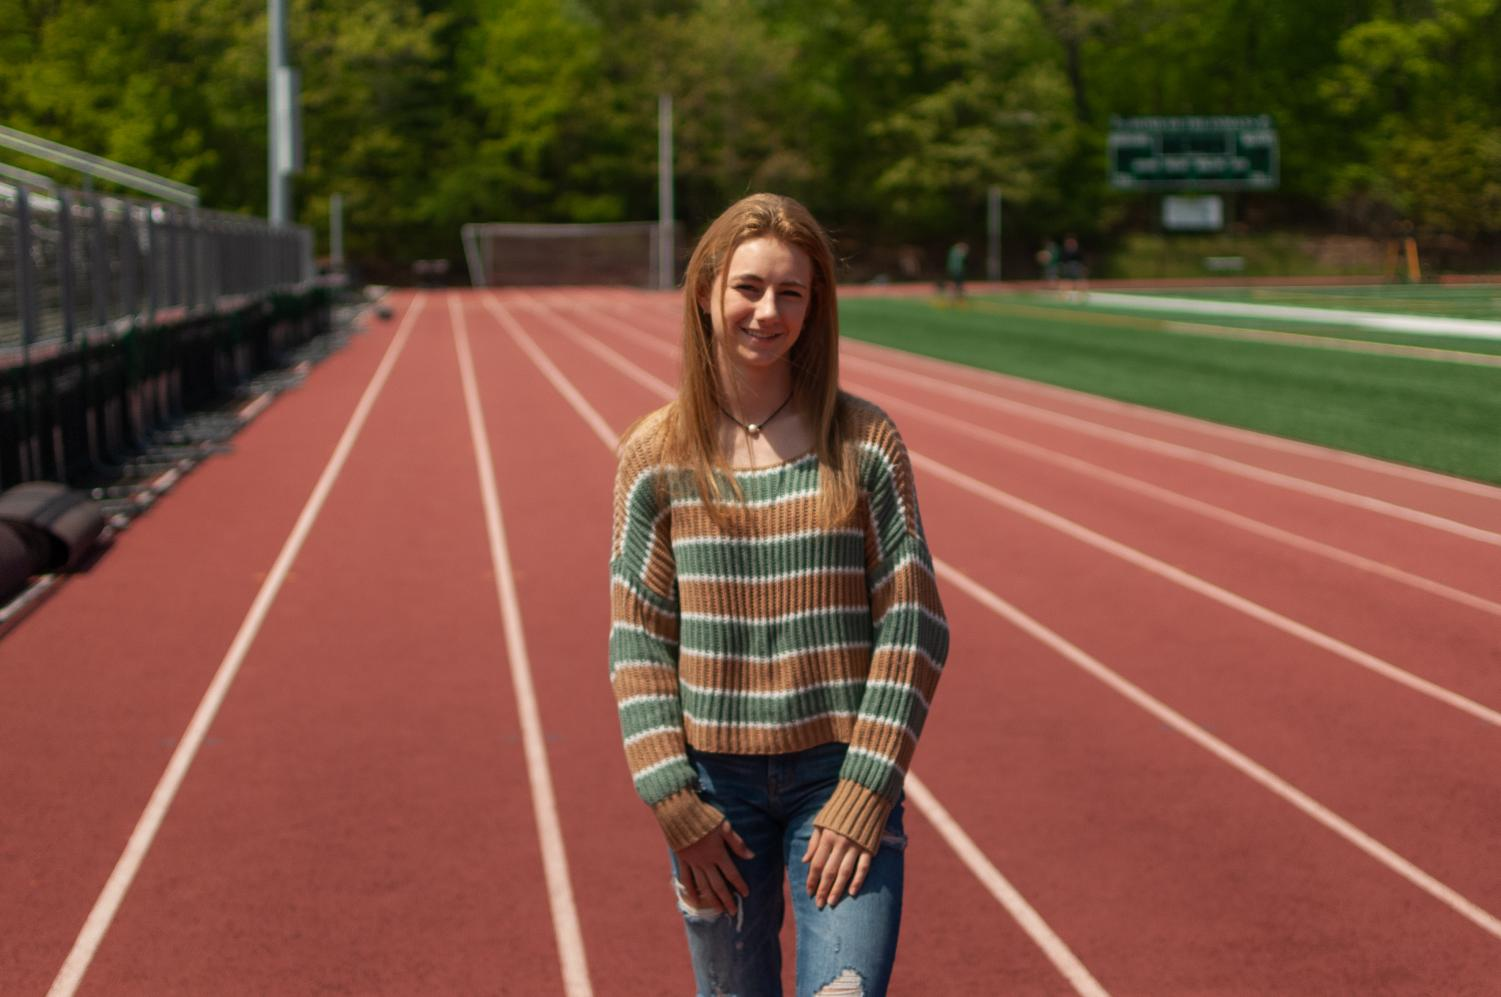 This week's Athlete of the Week is Sam Conjour.